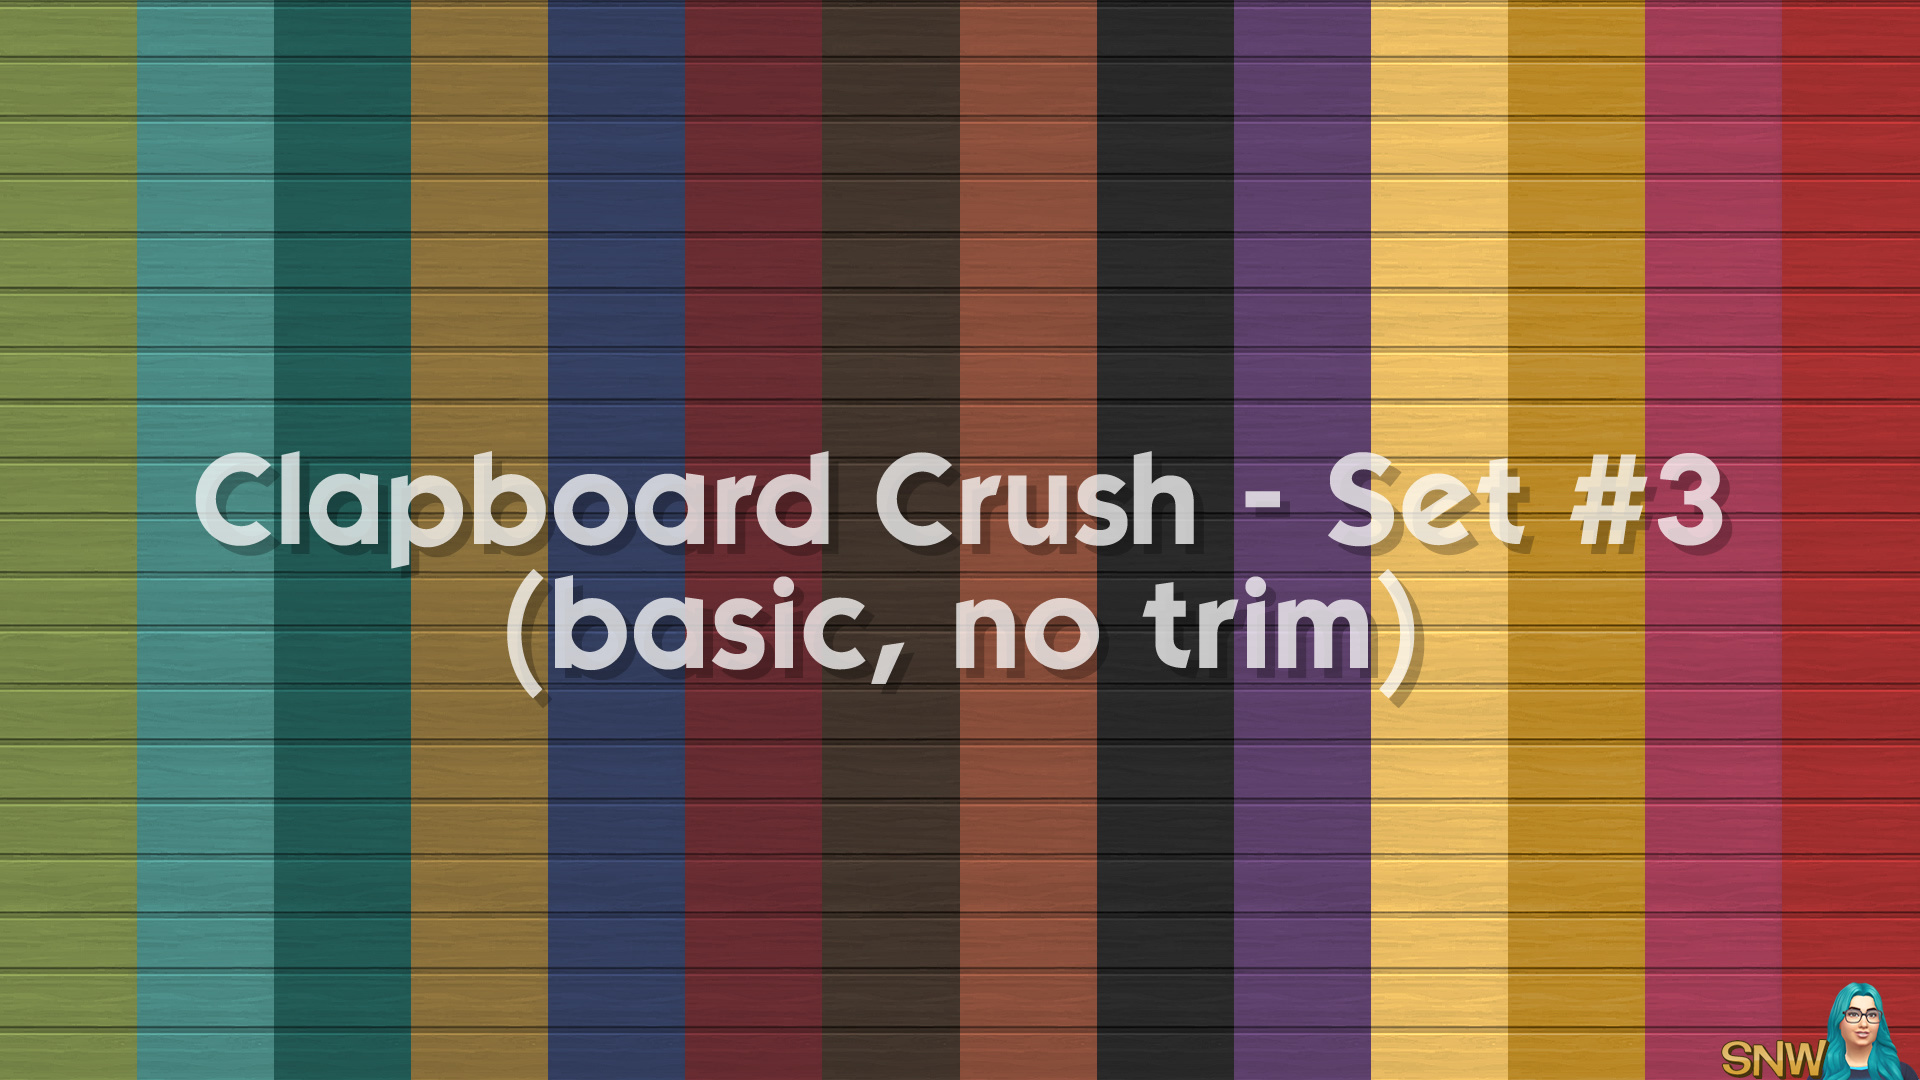 Clapboard Crush Siding Walls Set #3 Basic